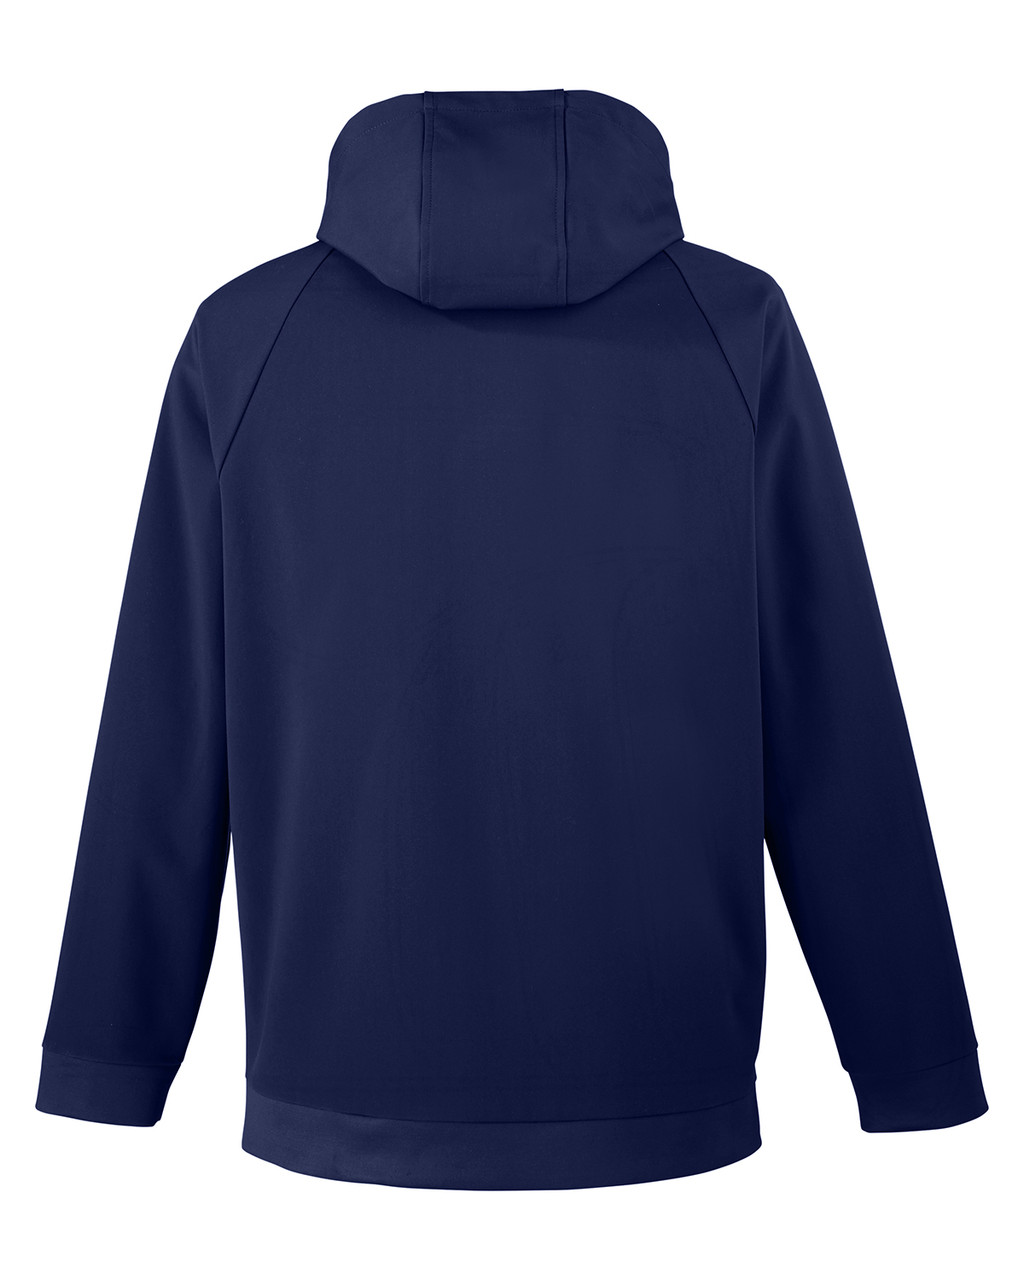 Classic Navy - Back, NE718 North End Men's City Hybrid Shell Jacket| BlankClothing.ca